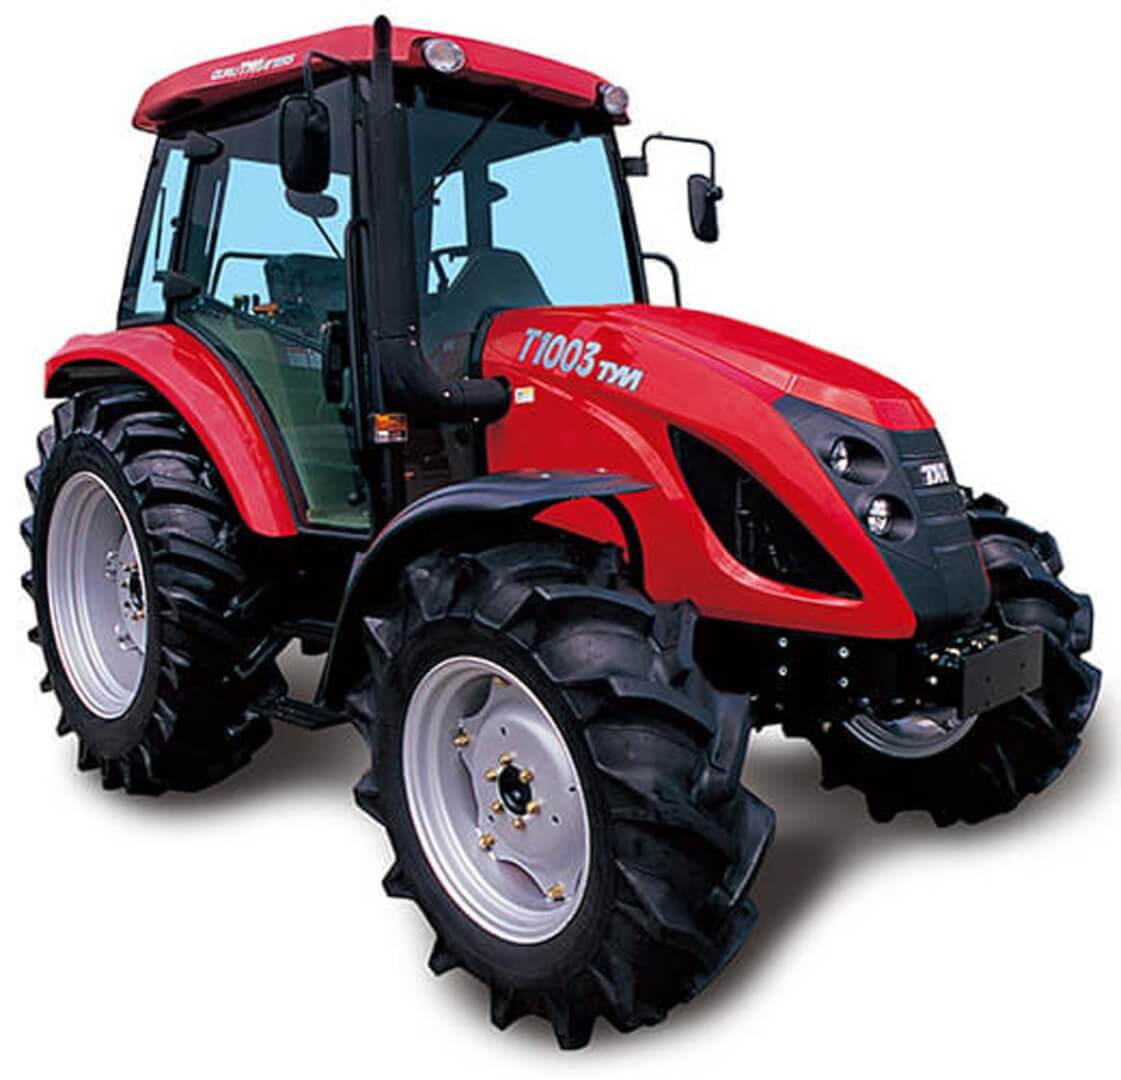 T1003 Tractor Thumbnail